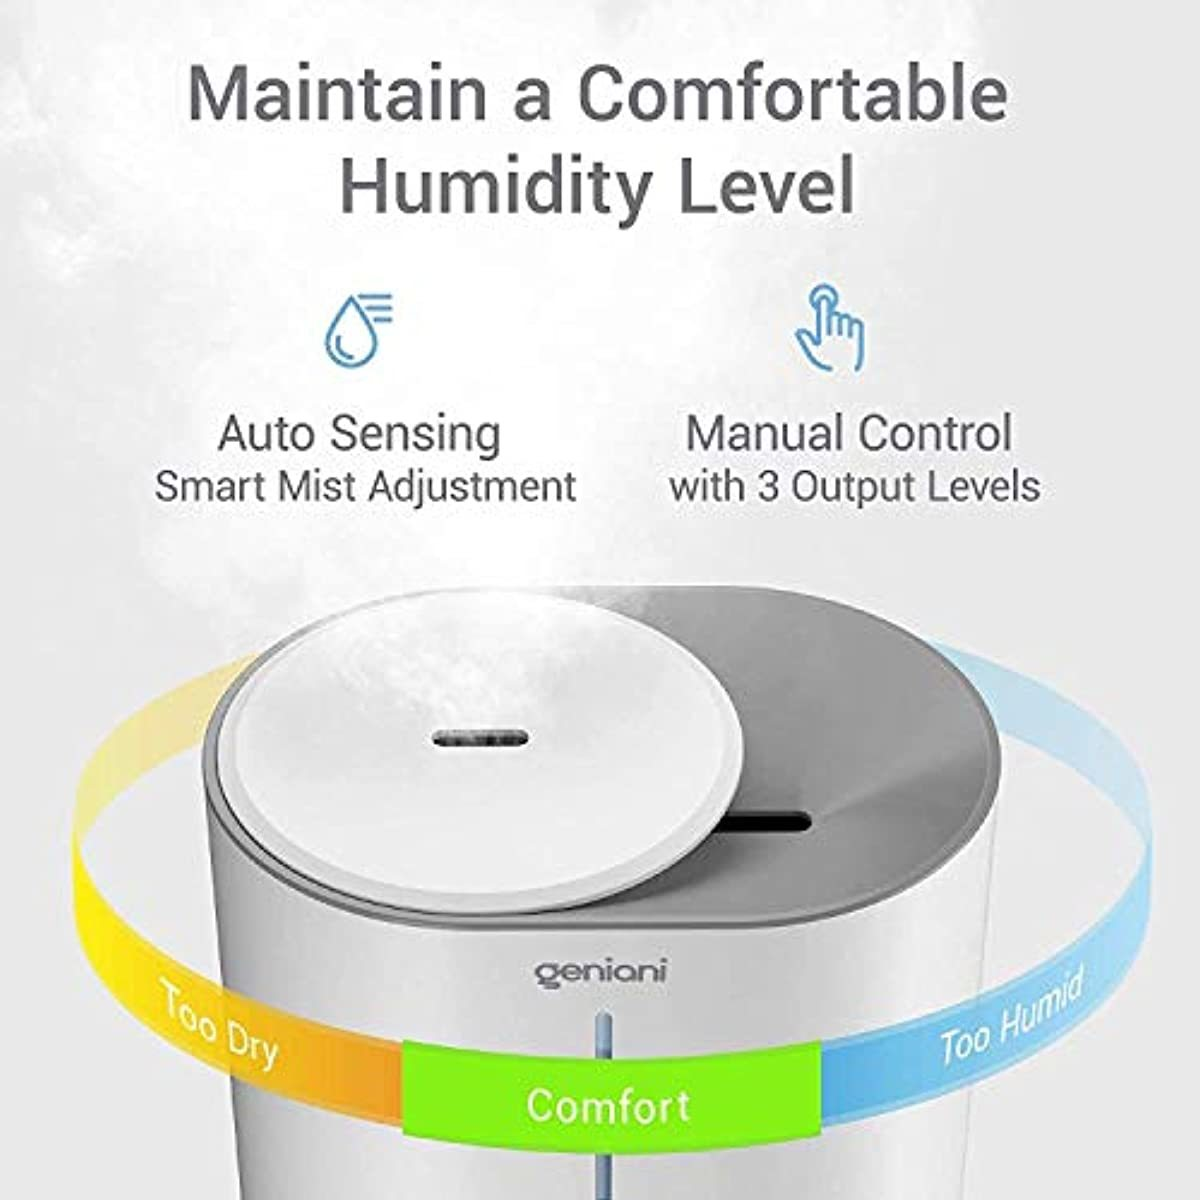 GENIANI Top Fill Cool Mist Humidifiers for Bedroom & Essential Oil Diffuser - Smart Aroma Ultrasonic Humidifier for Home, Baby, Large Room with Auto Shut Off, 4L Easy to Clean Water Tank (4L, White)